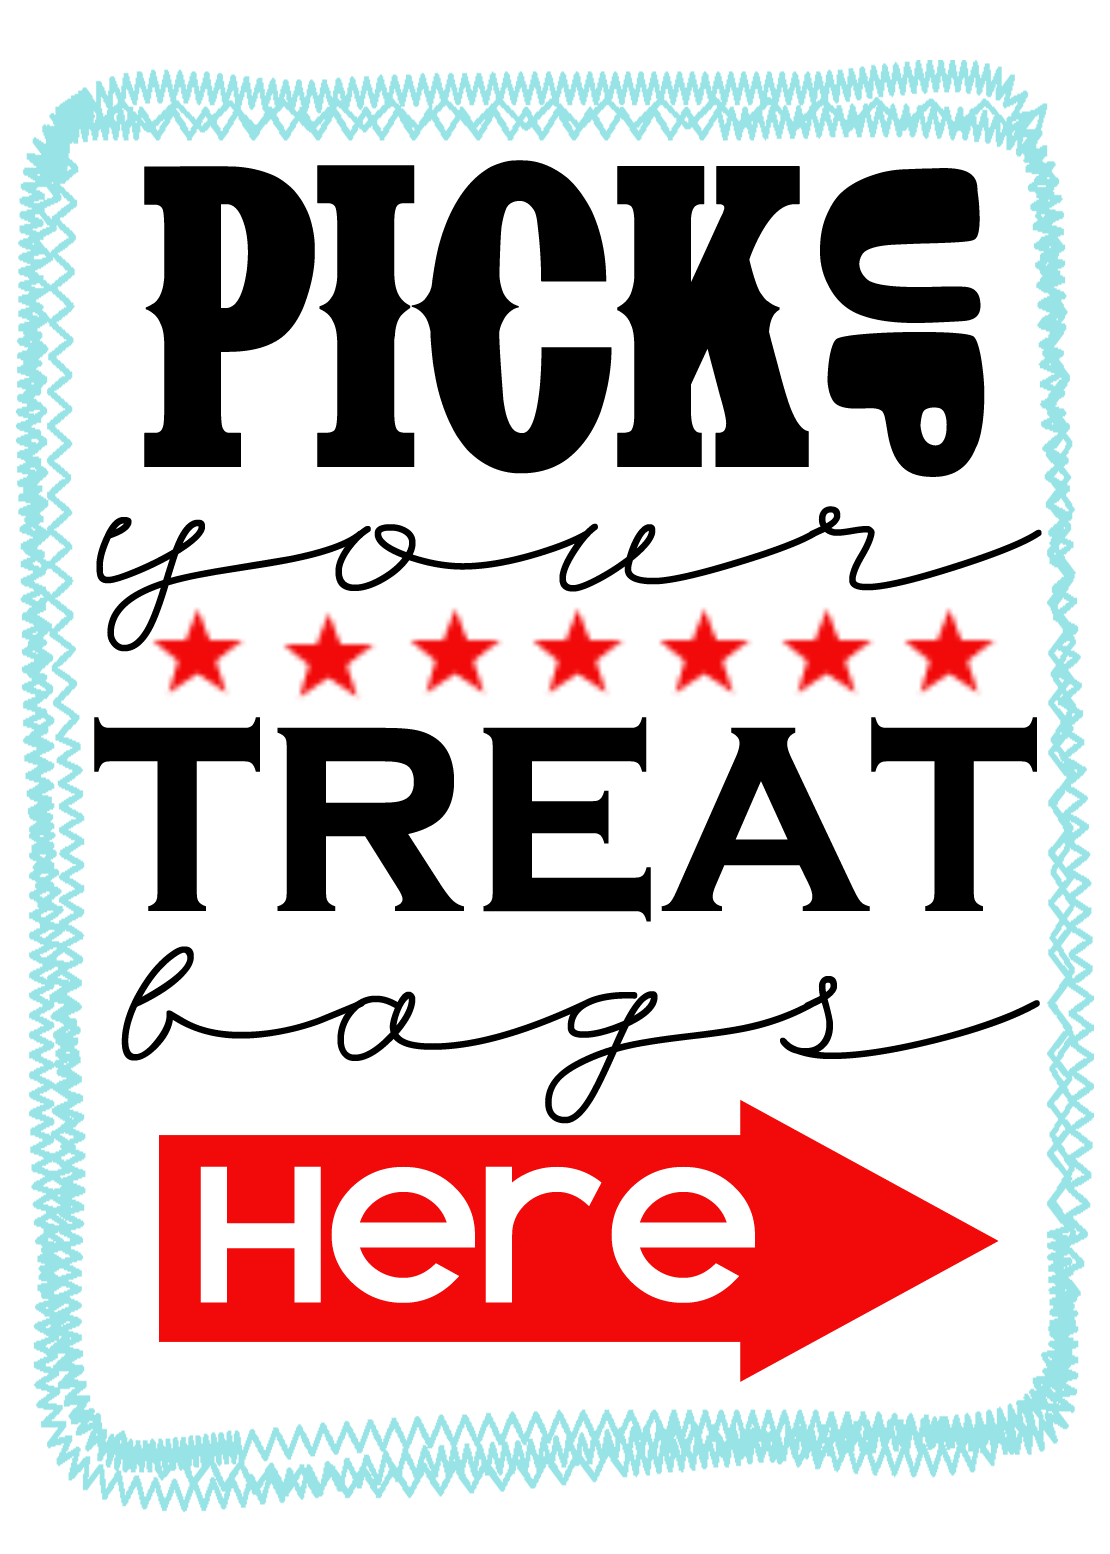 Carnival Sign Template | www.imgkid.com - The Image Kid ...